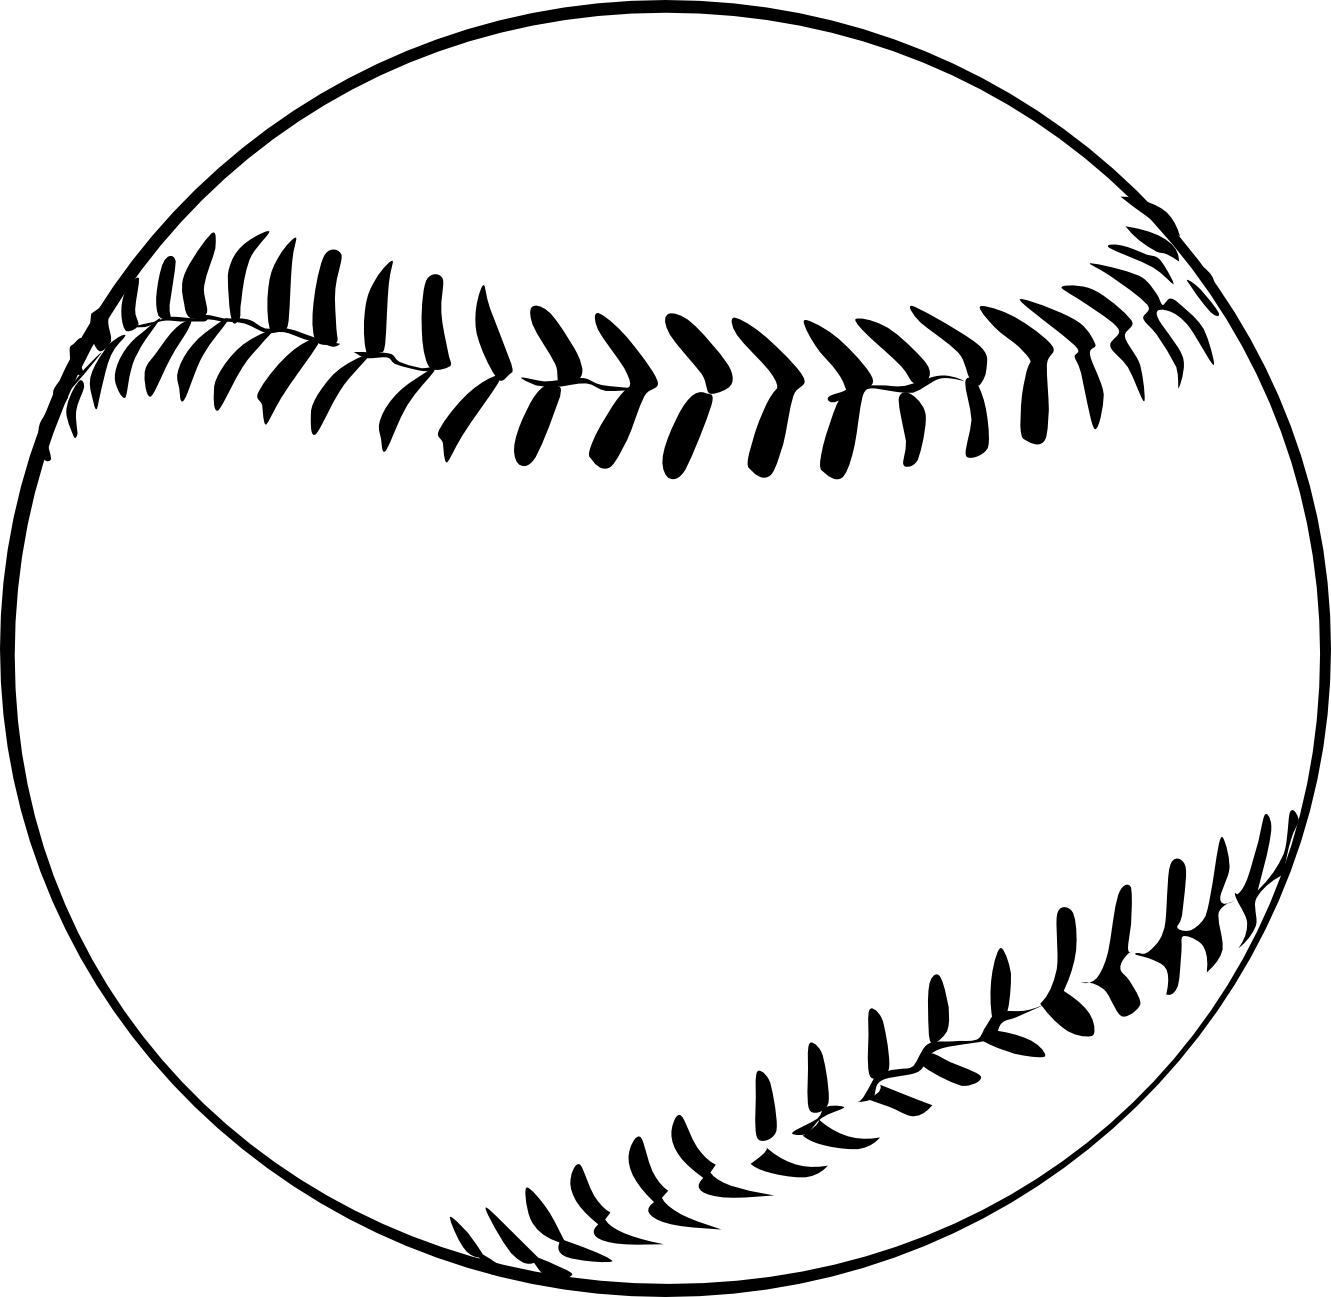 Baseball clipart black and white free clipart images 4.